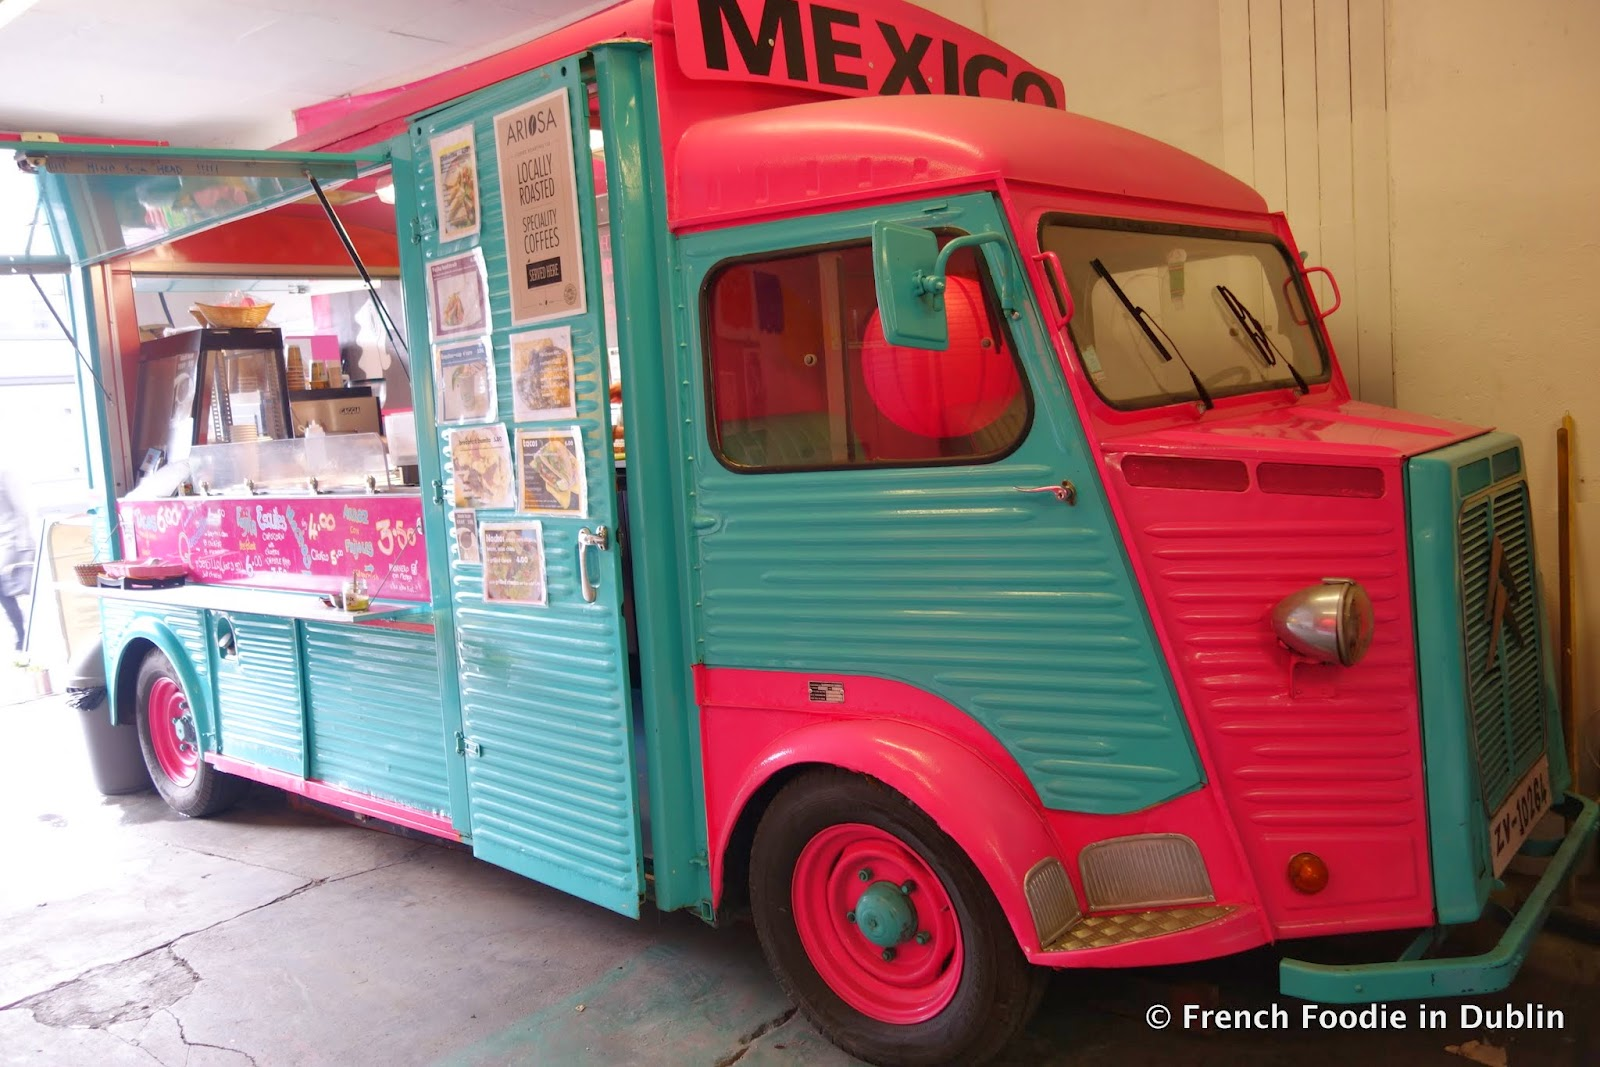 The Vintage Truck Painted In Pink And Turquoise Is Totally Cute